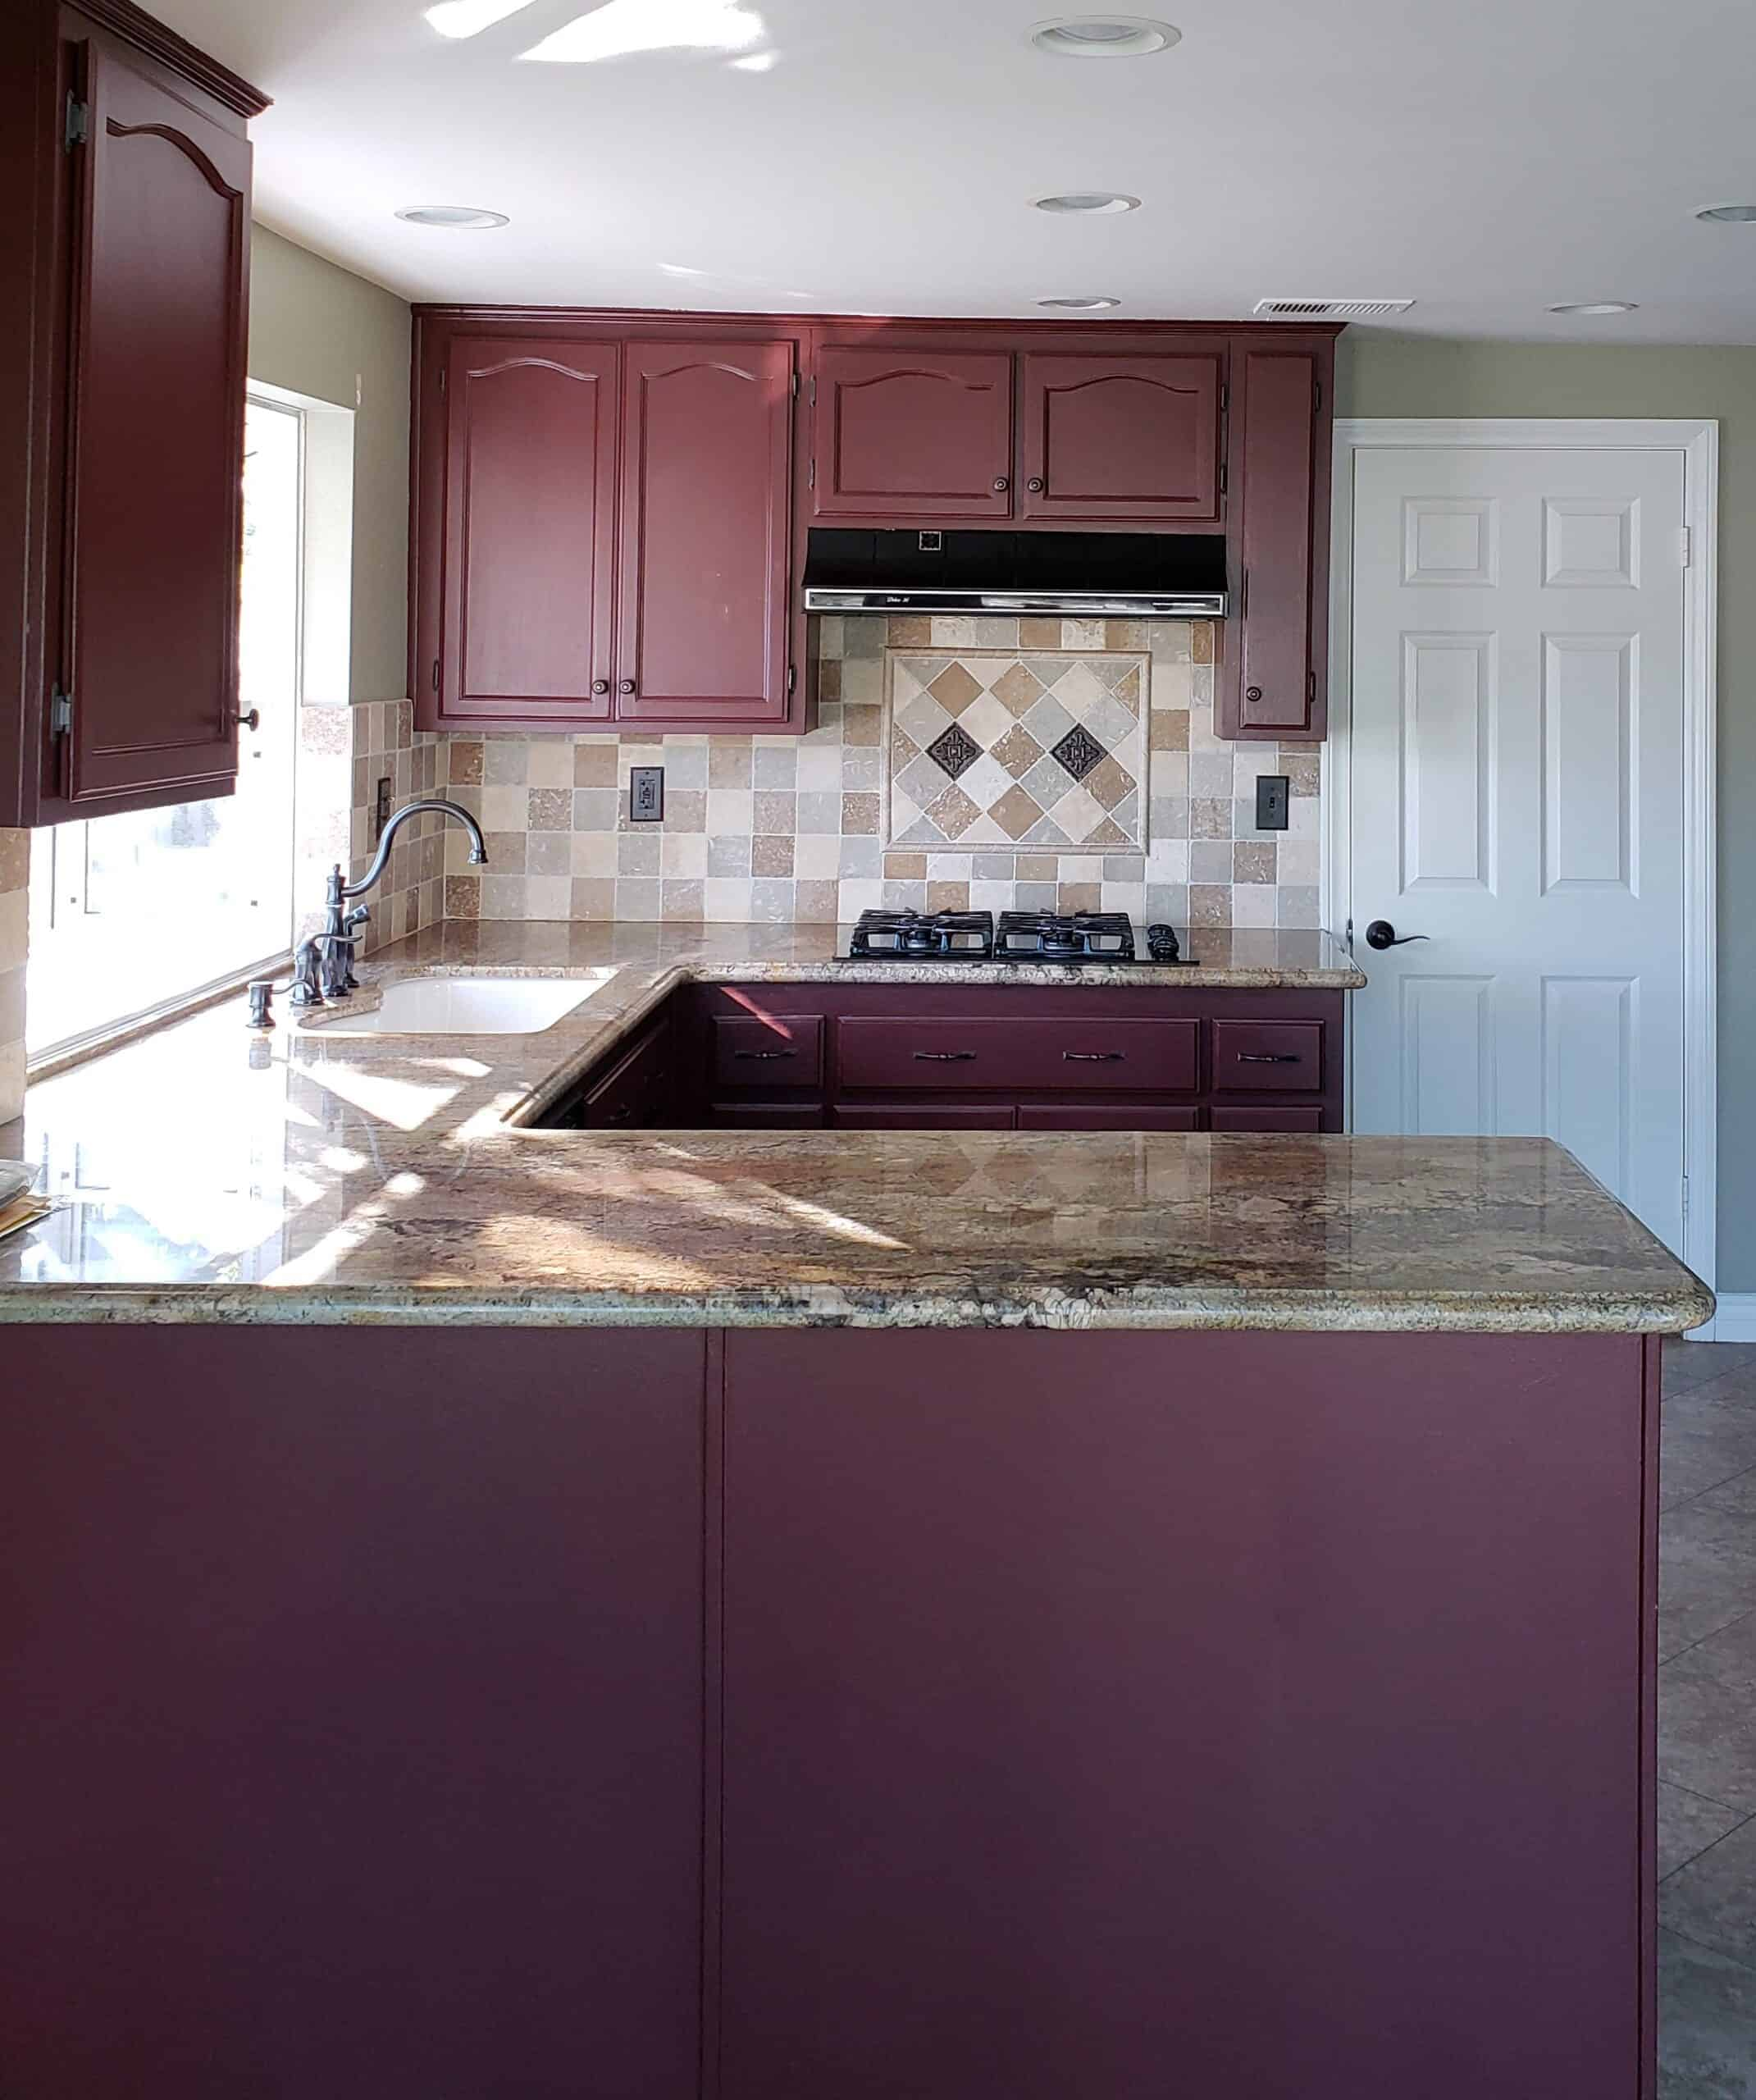 maroon kitchen cabinets before image